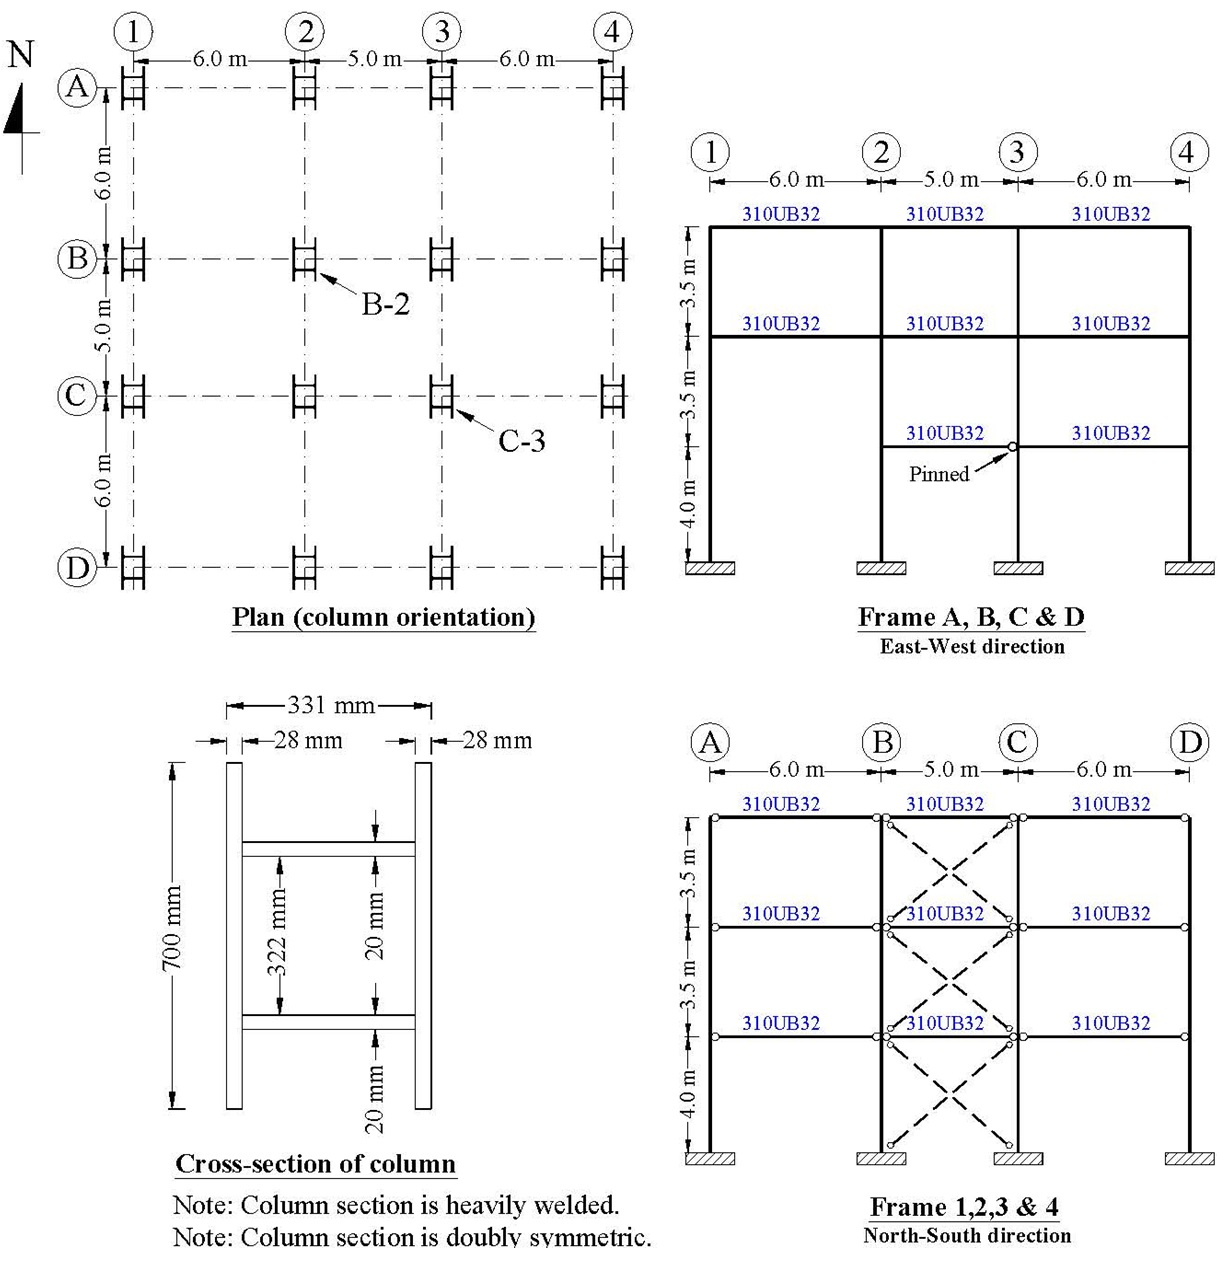 Plan Elevation Cross Section : Plan view of a storey building cross section an